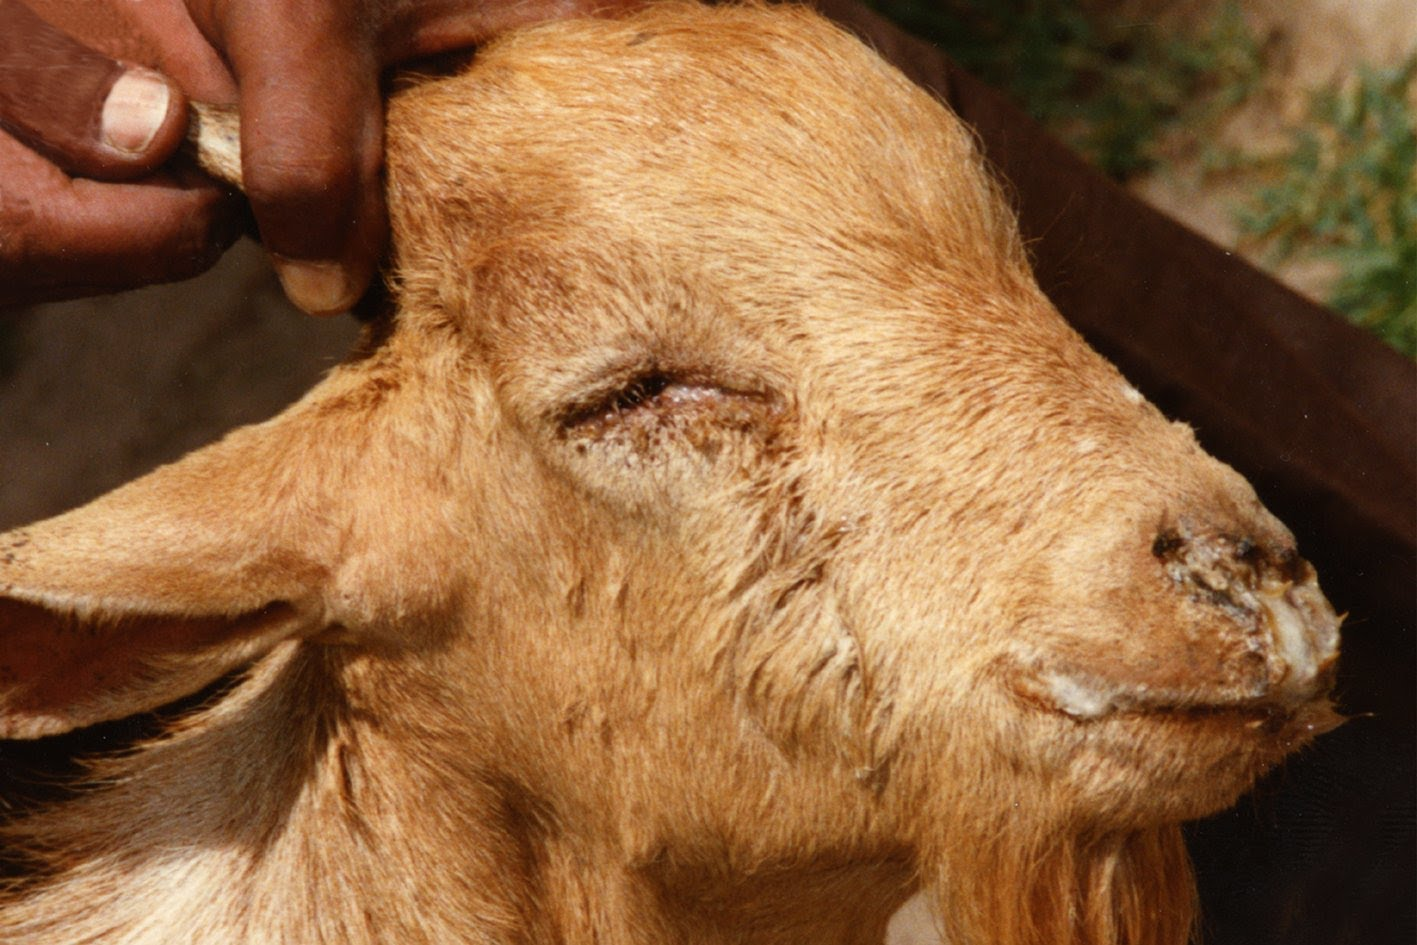 The disease is highly lethal to small ruminants – killing up to 90 percent of infected animals